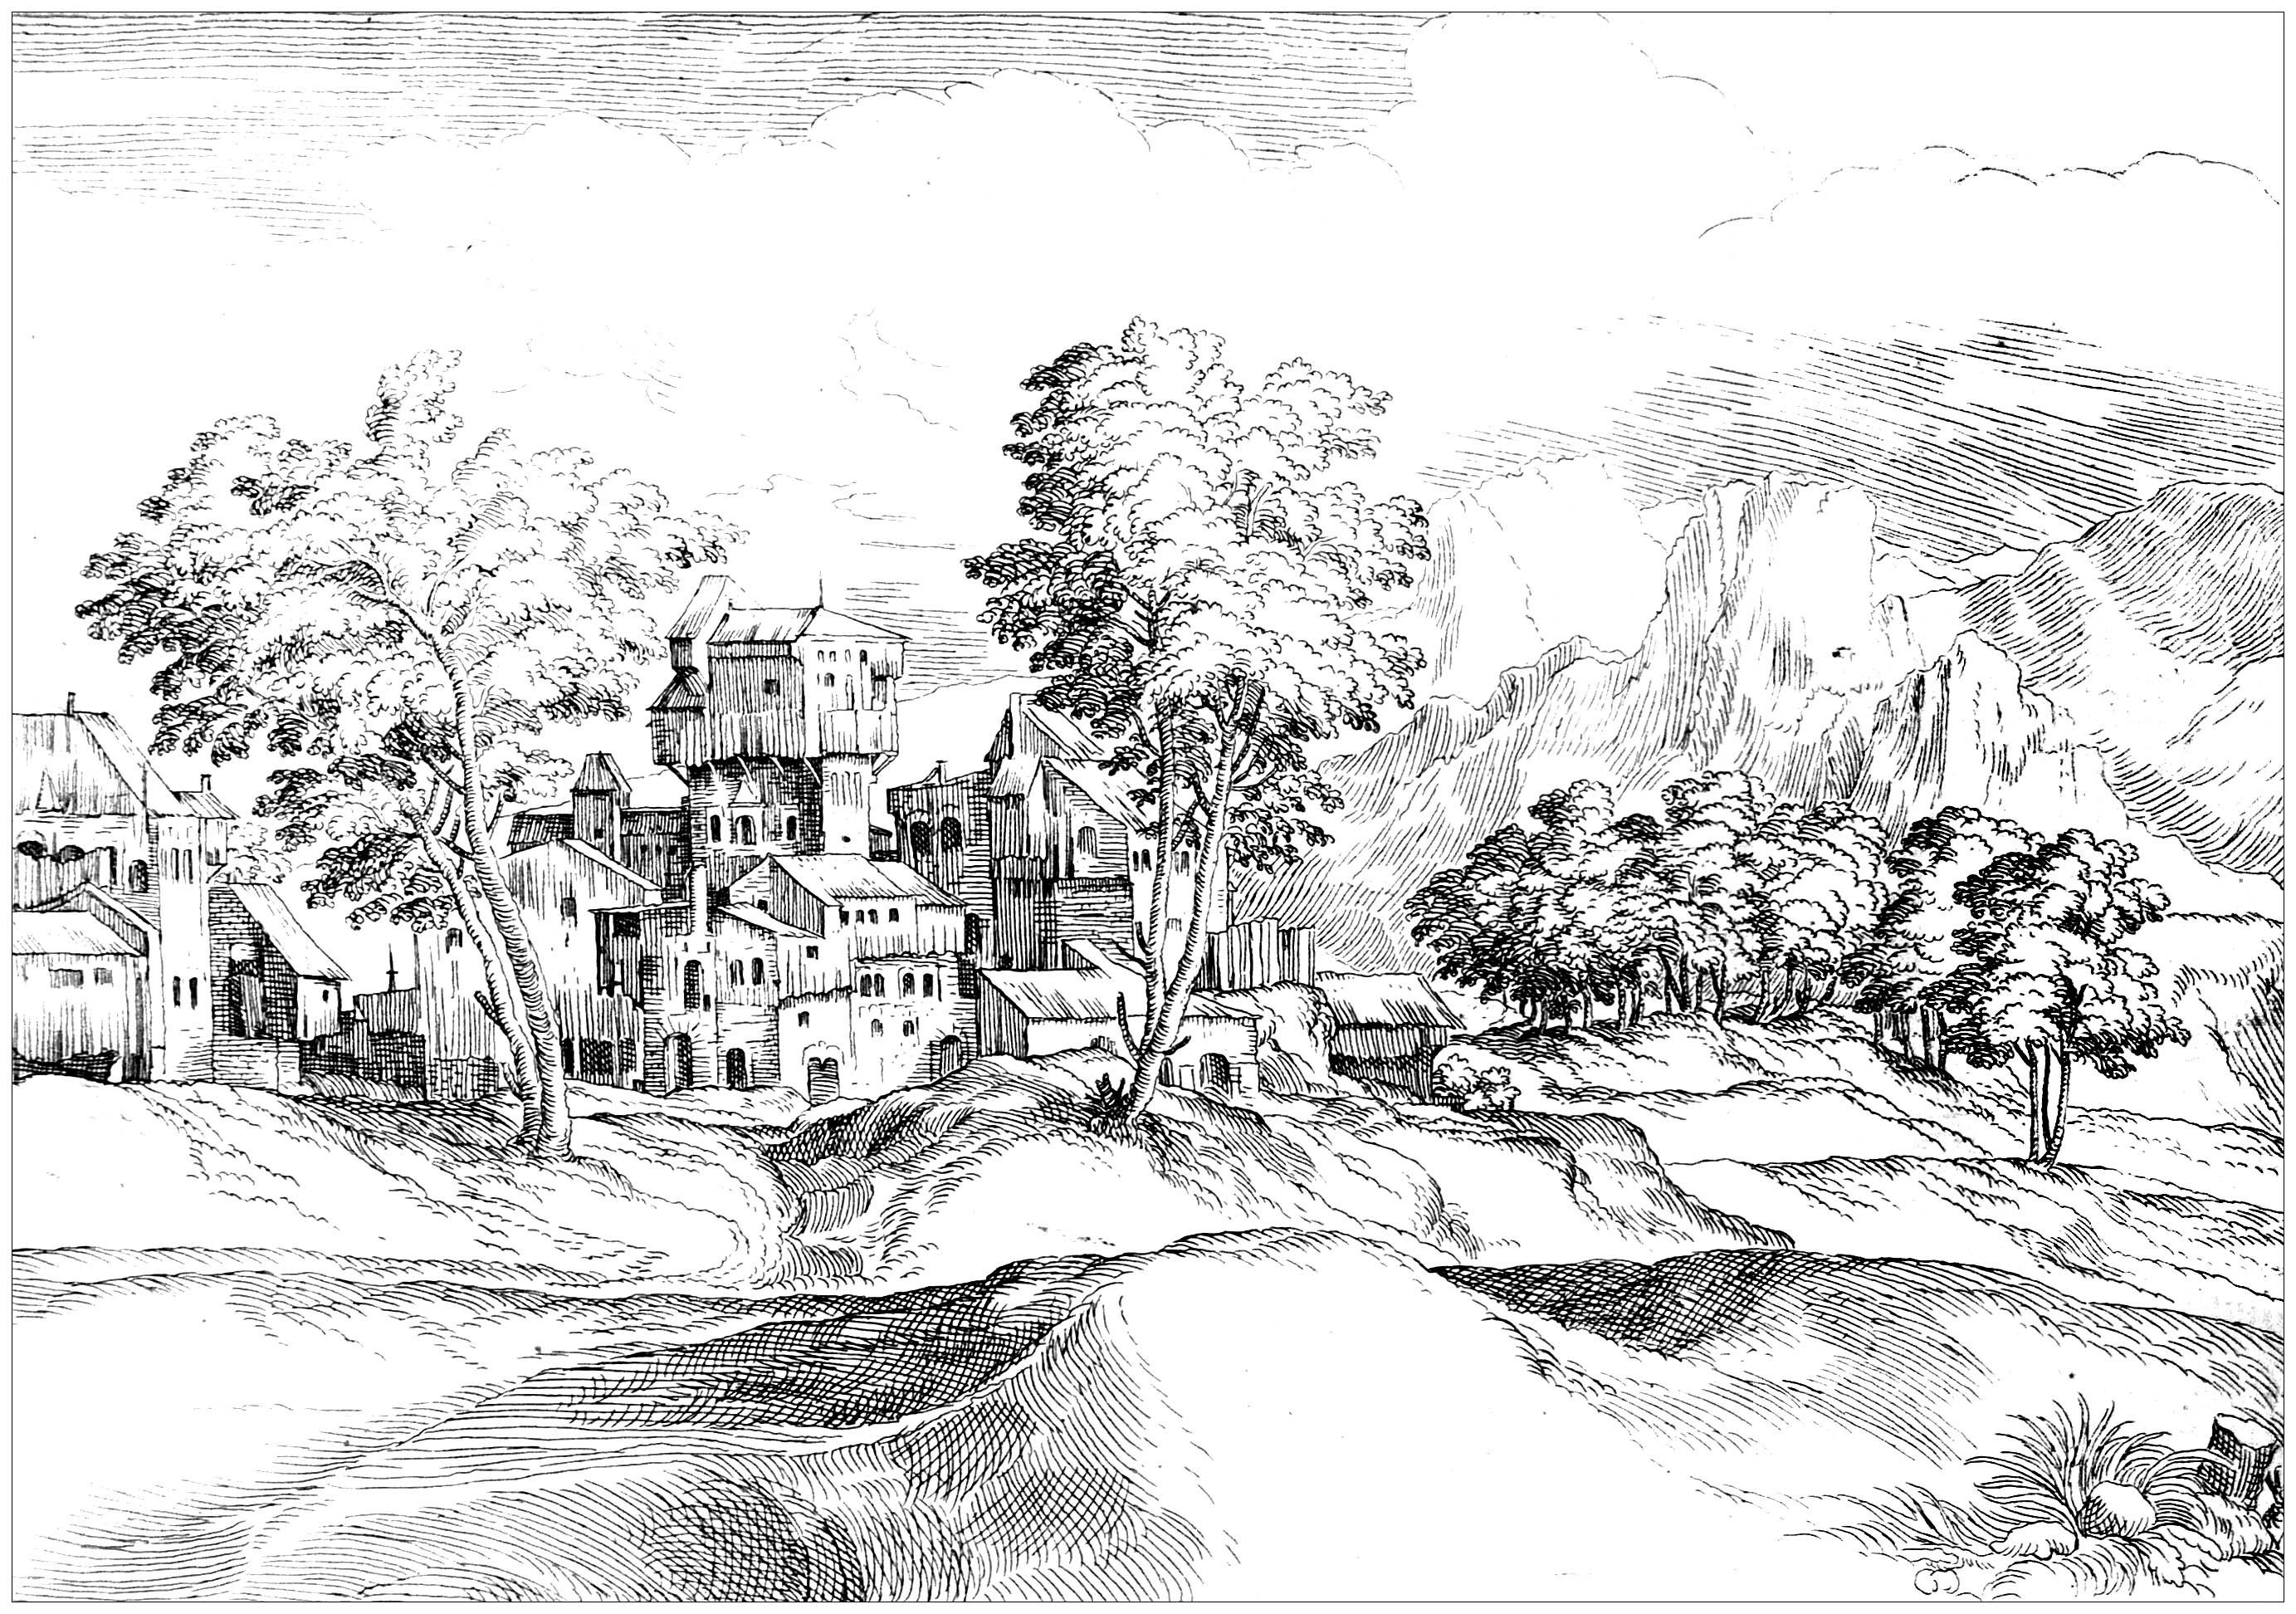 Landscape drawing, 17th century